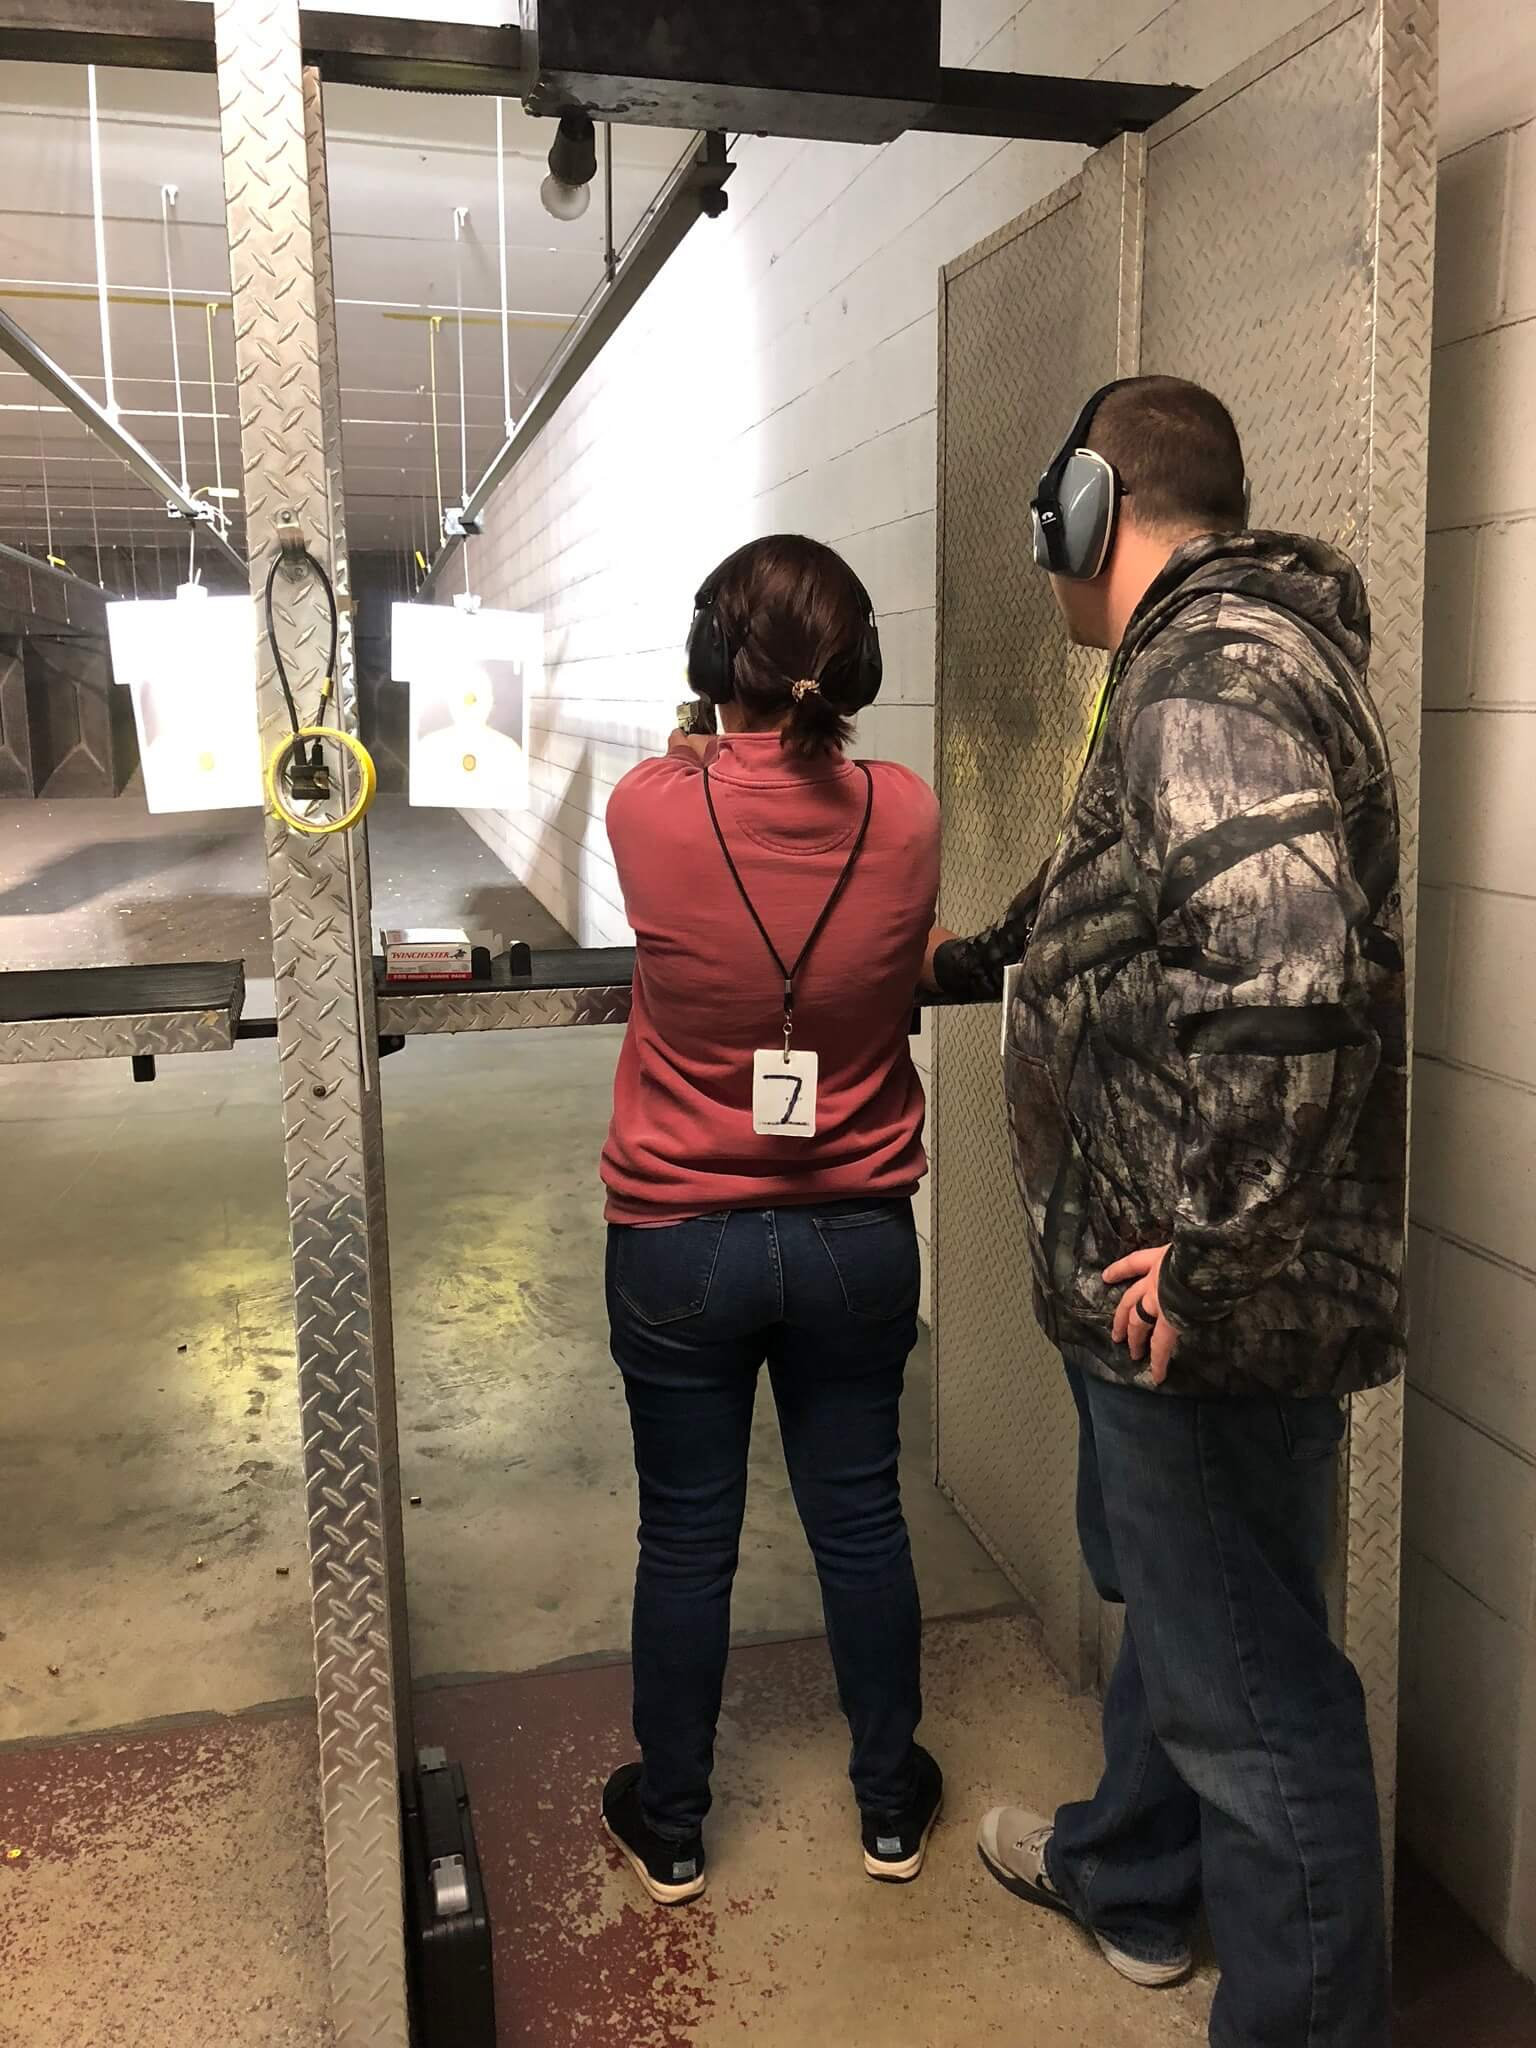 - -my brother taught me about shooting guns at the range